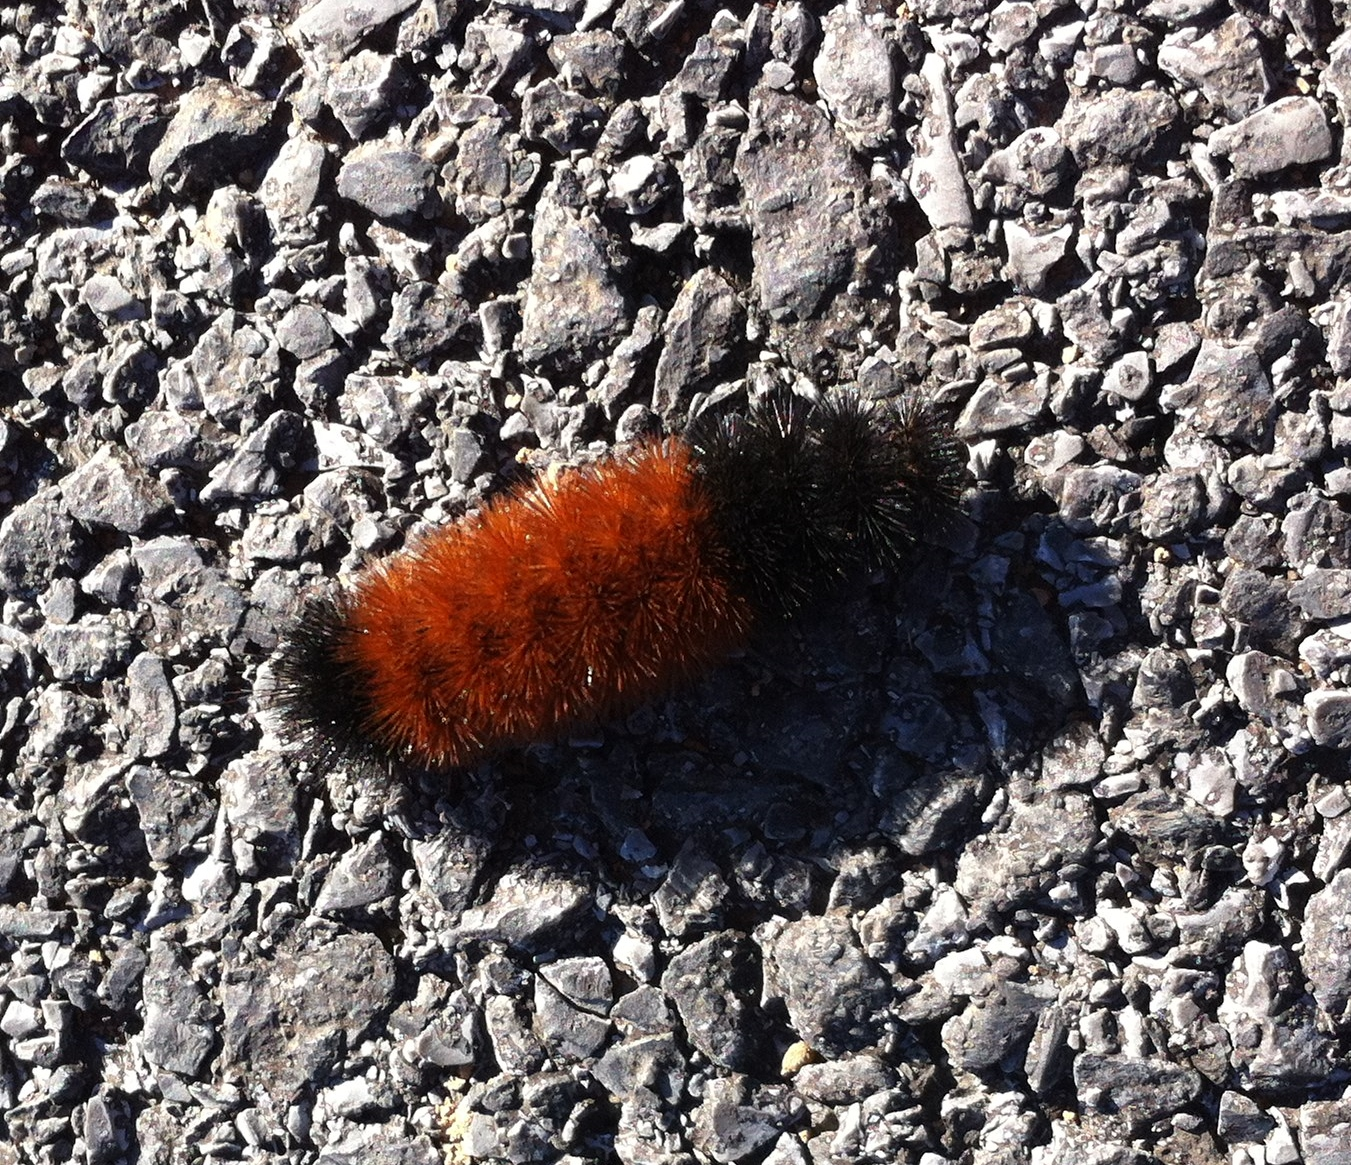 All Black Woolly Bear Caterpillars: 365 Reasons To Smile – Day 113